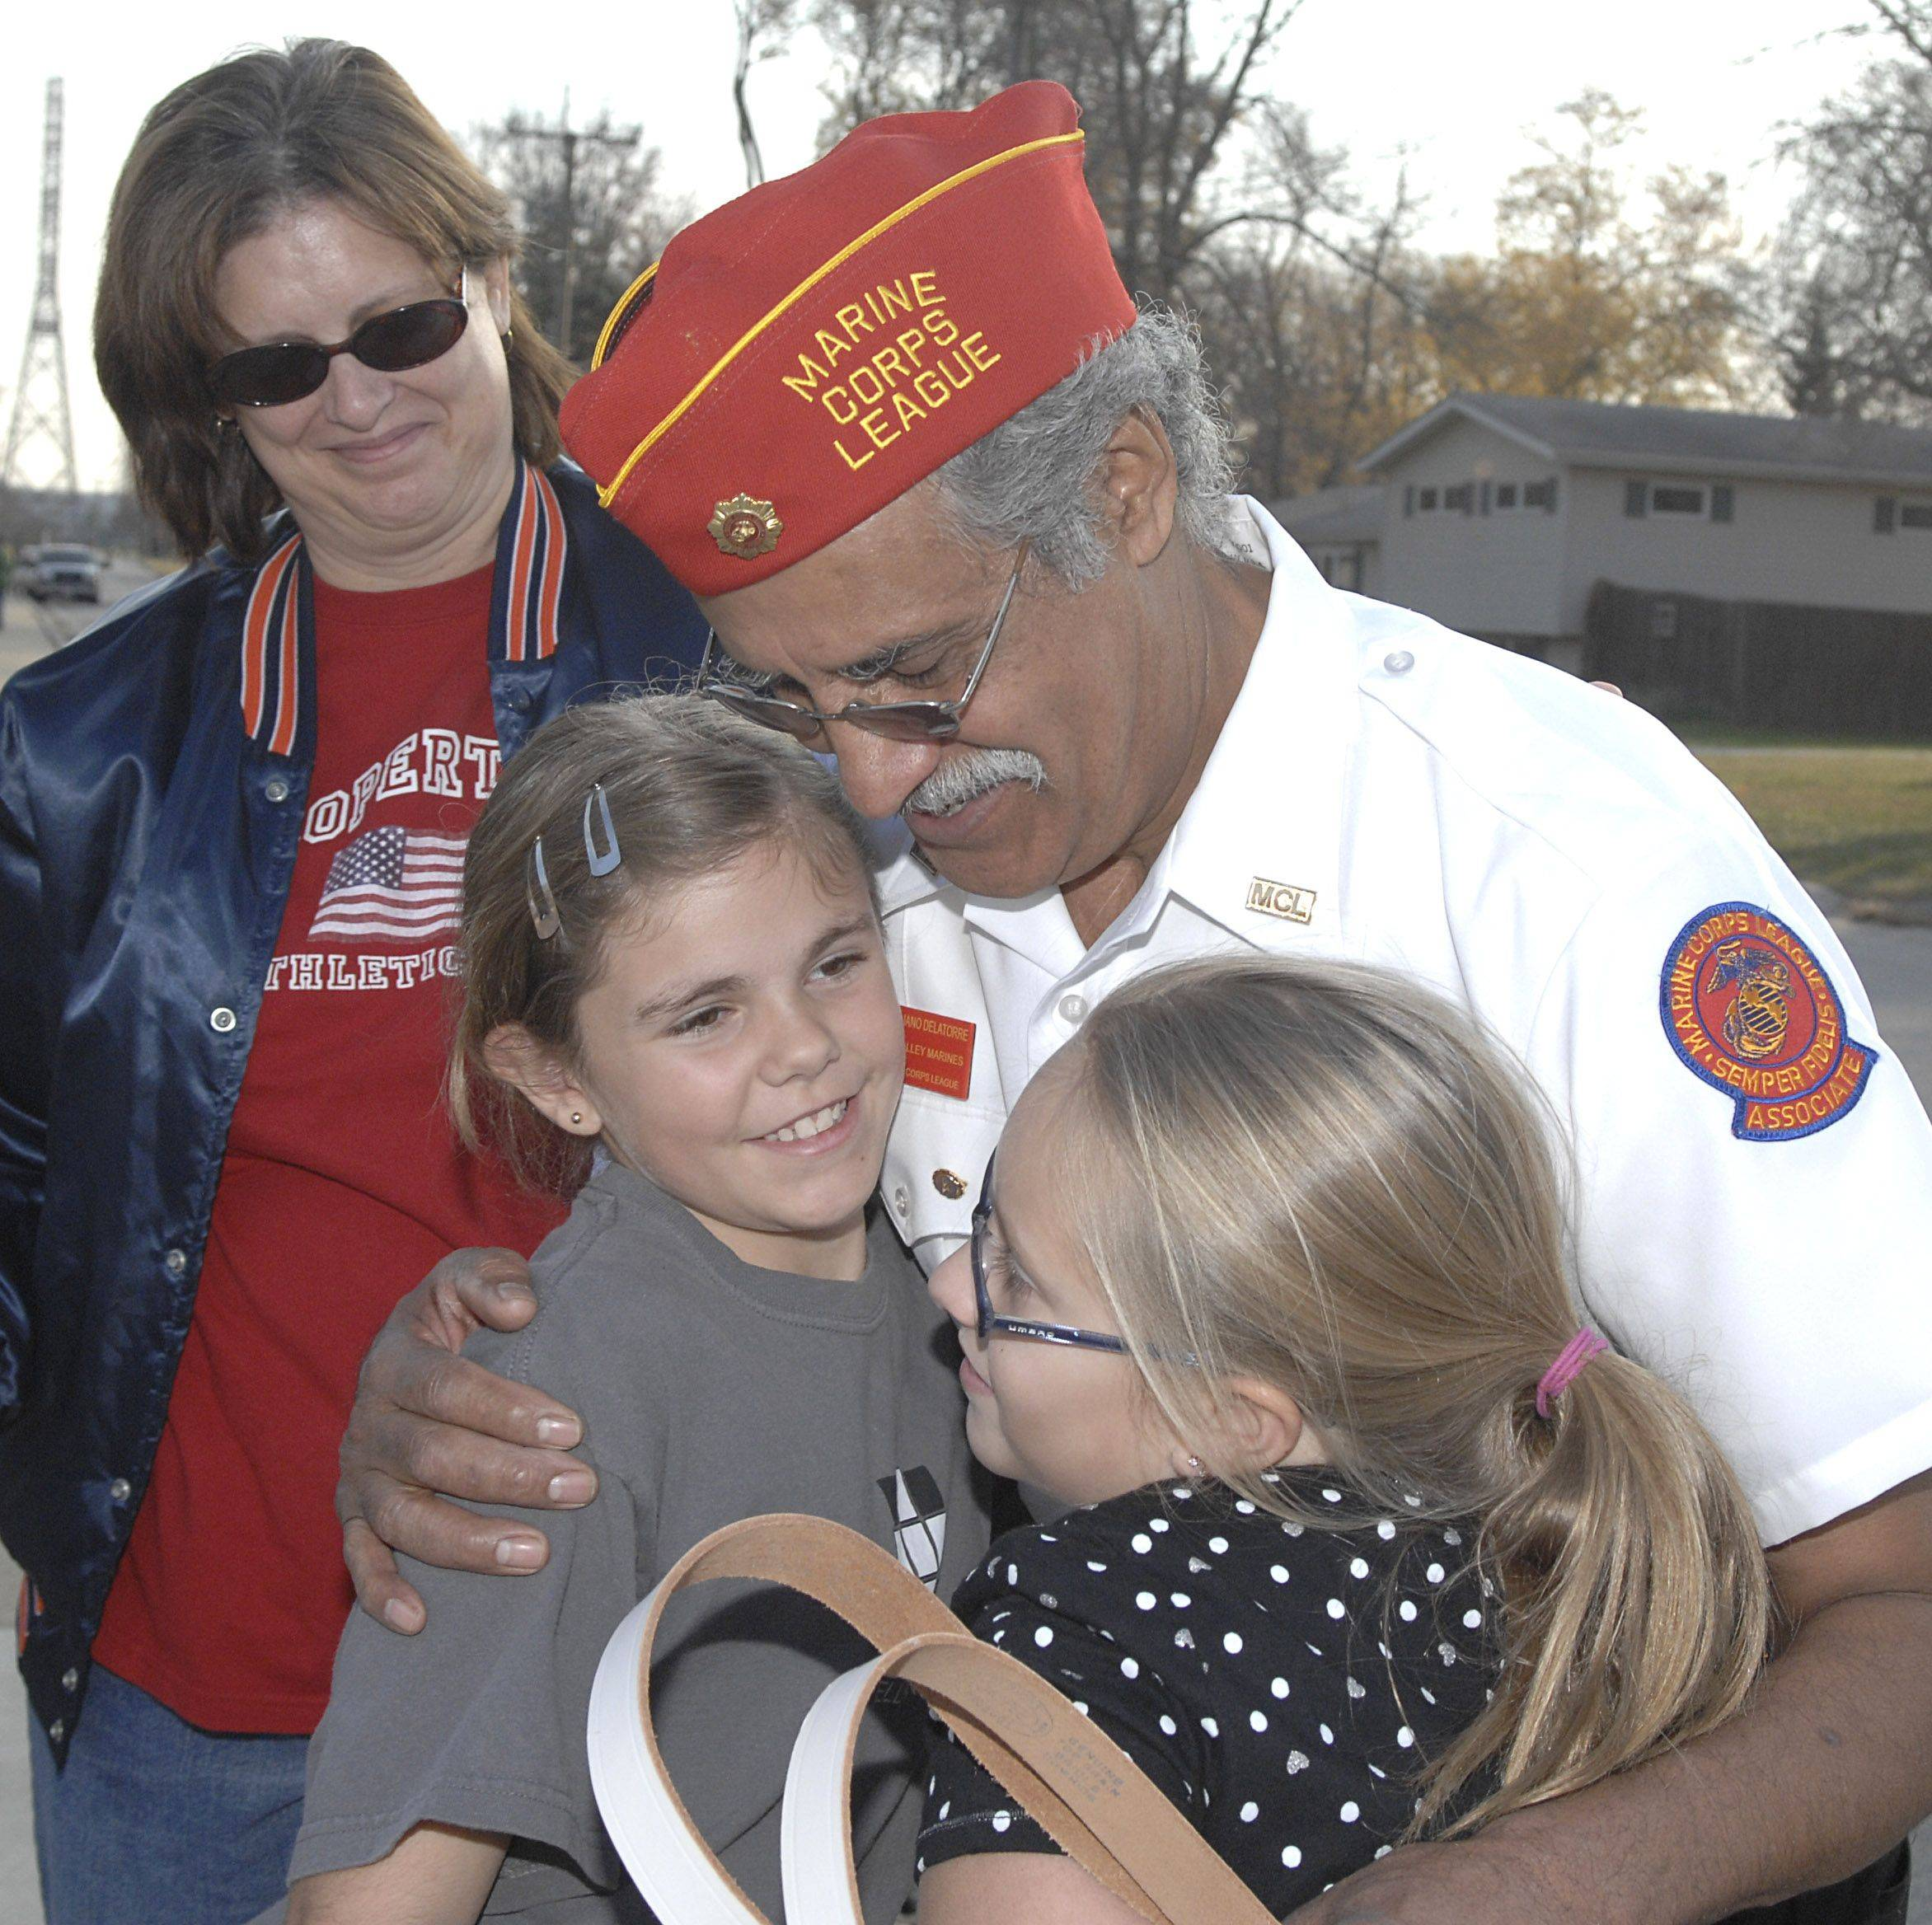 Laura Stoecker/lstoecker@dailyherald.comAureliano Delatorre of Aurora receives a hug from Morgan Lewis, left, and Shelby Balduff, both 10, after the Veterans Day ceremony in North Aurora on Thursday, November 11. Delatorre's son, Jesse, was killed while serving in the Marines in 2007. Morgan and Shelby came from the nearby after school day care Share and Care Learning Center.